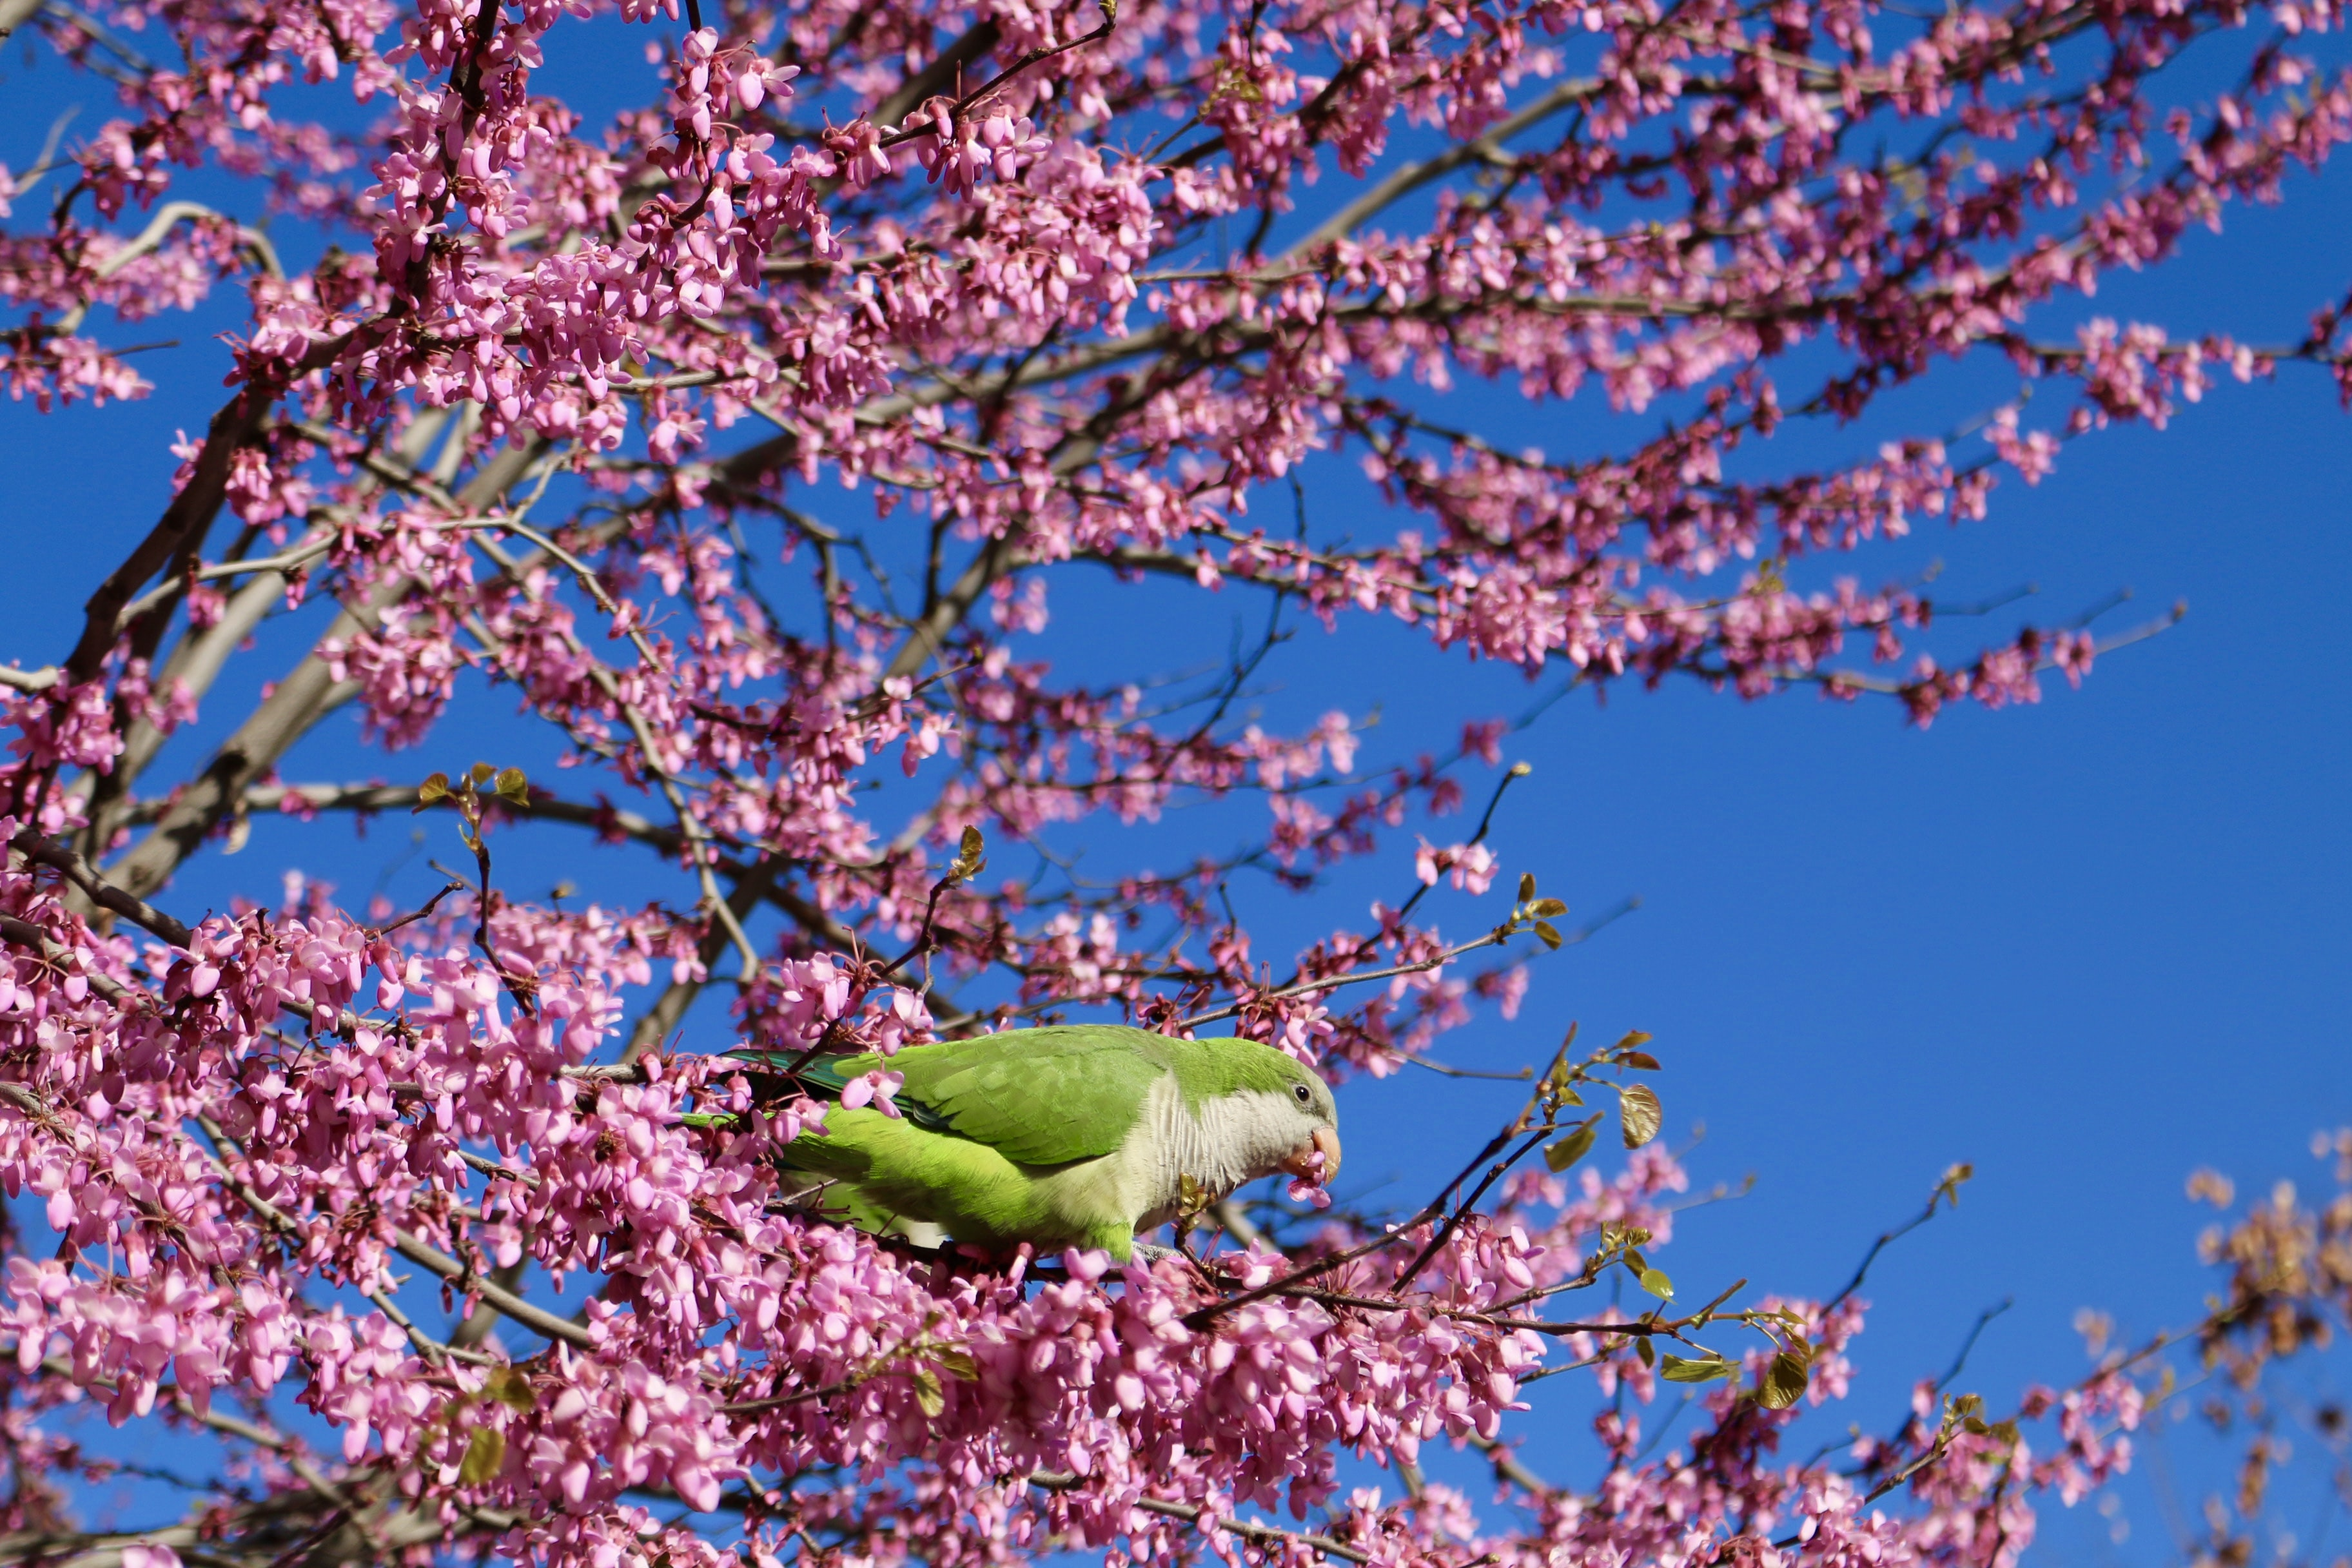 green bird on pink petaled tree during daytime photography